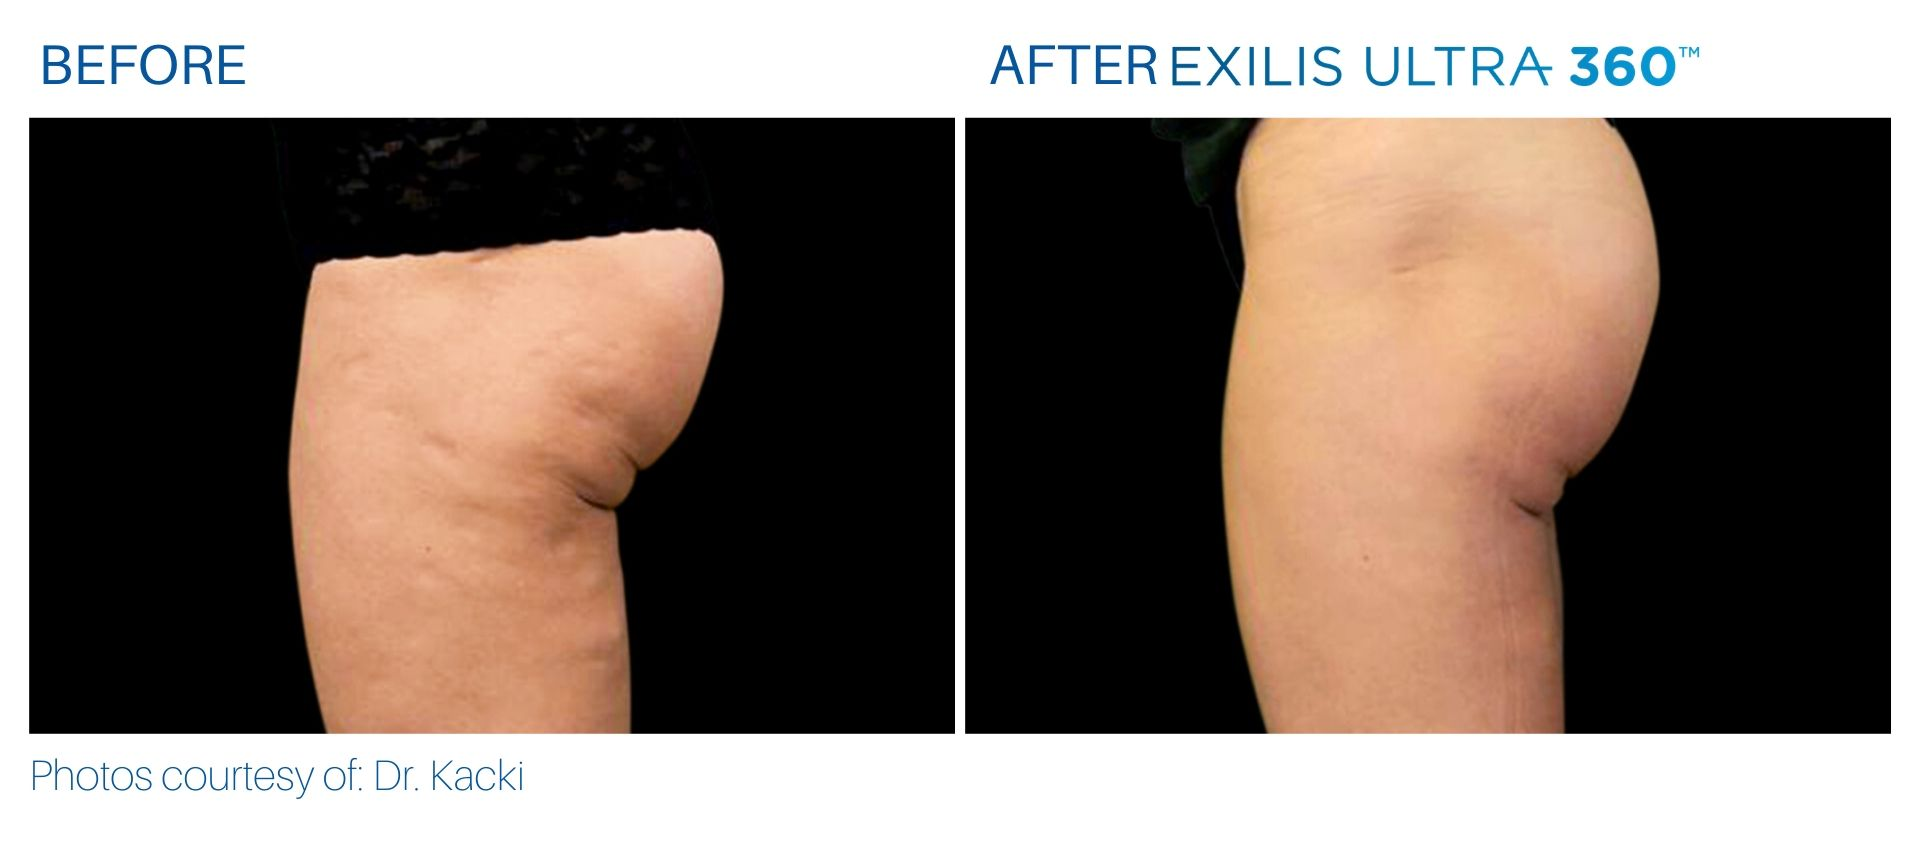 Cellulite treatment before and after at The Sophia Med Spa in Sudbury